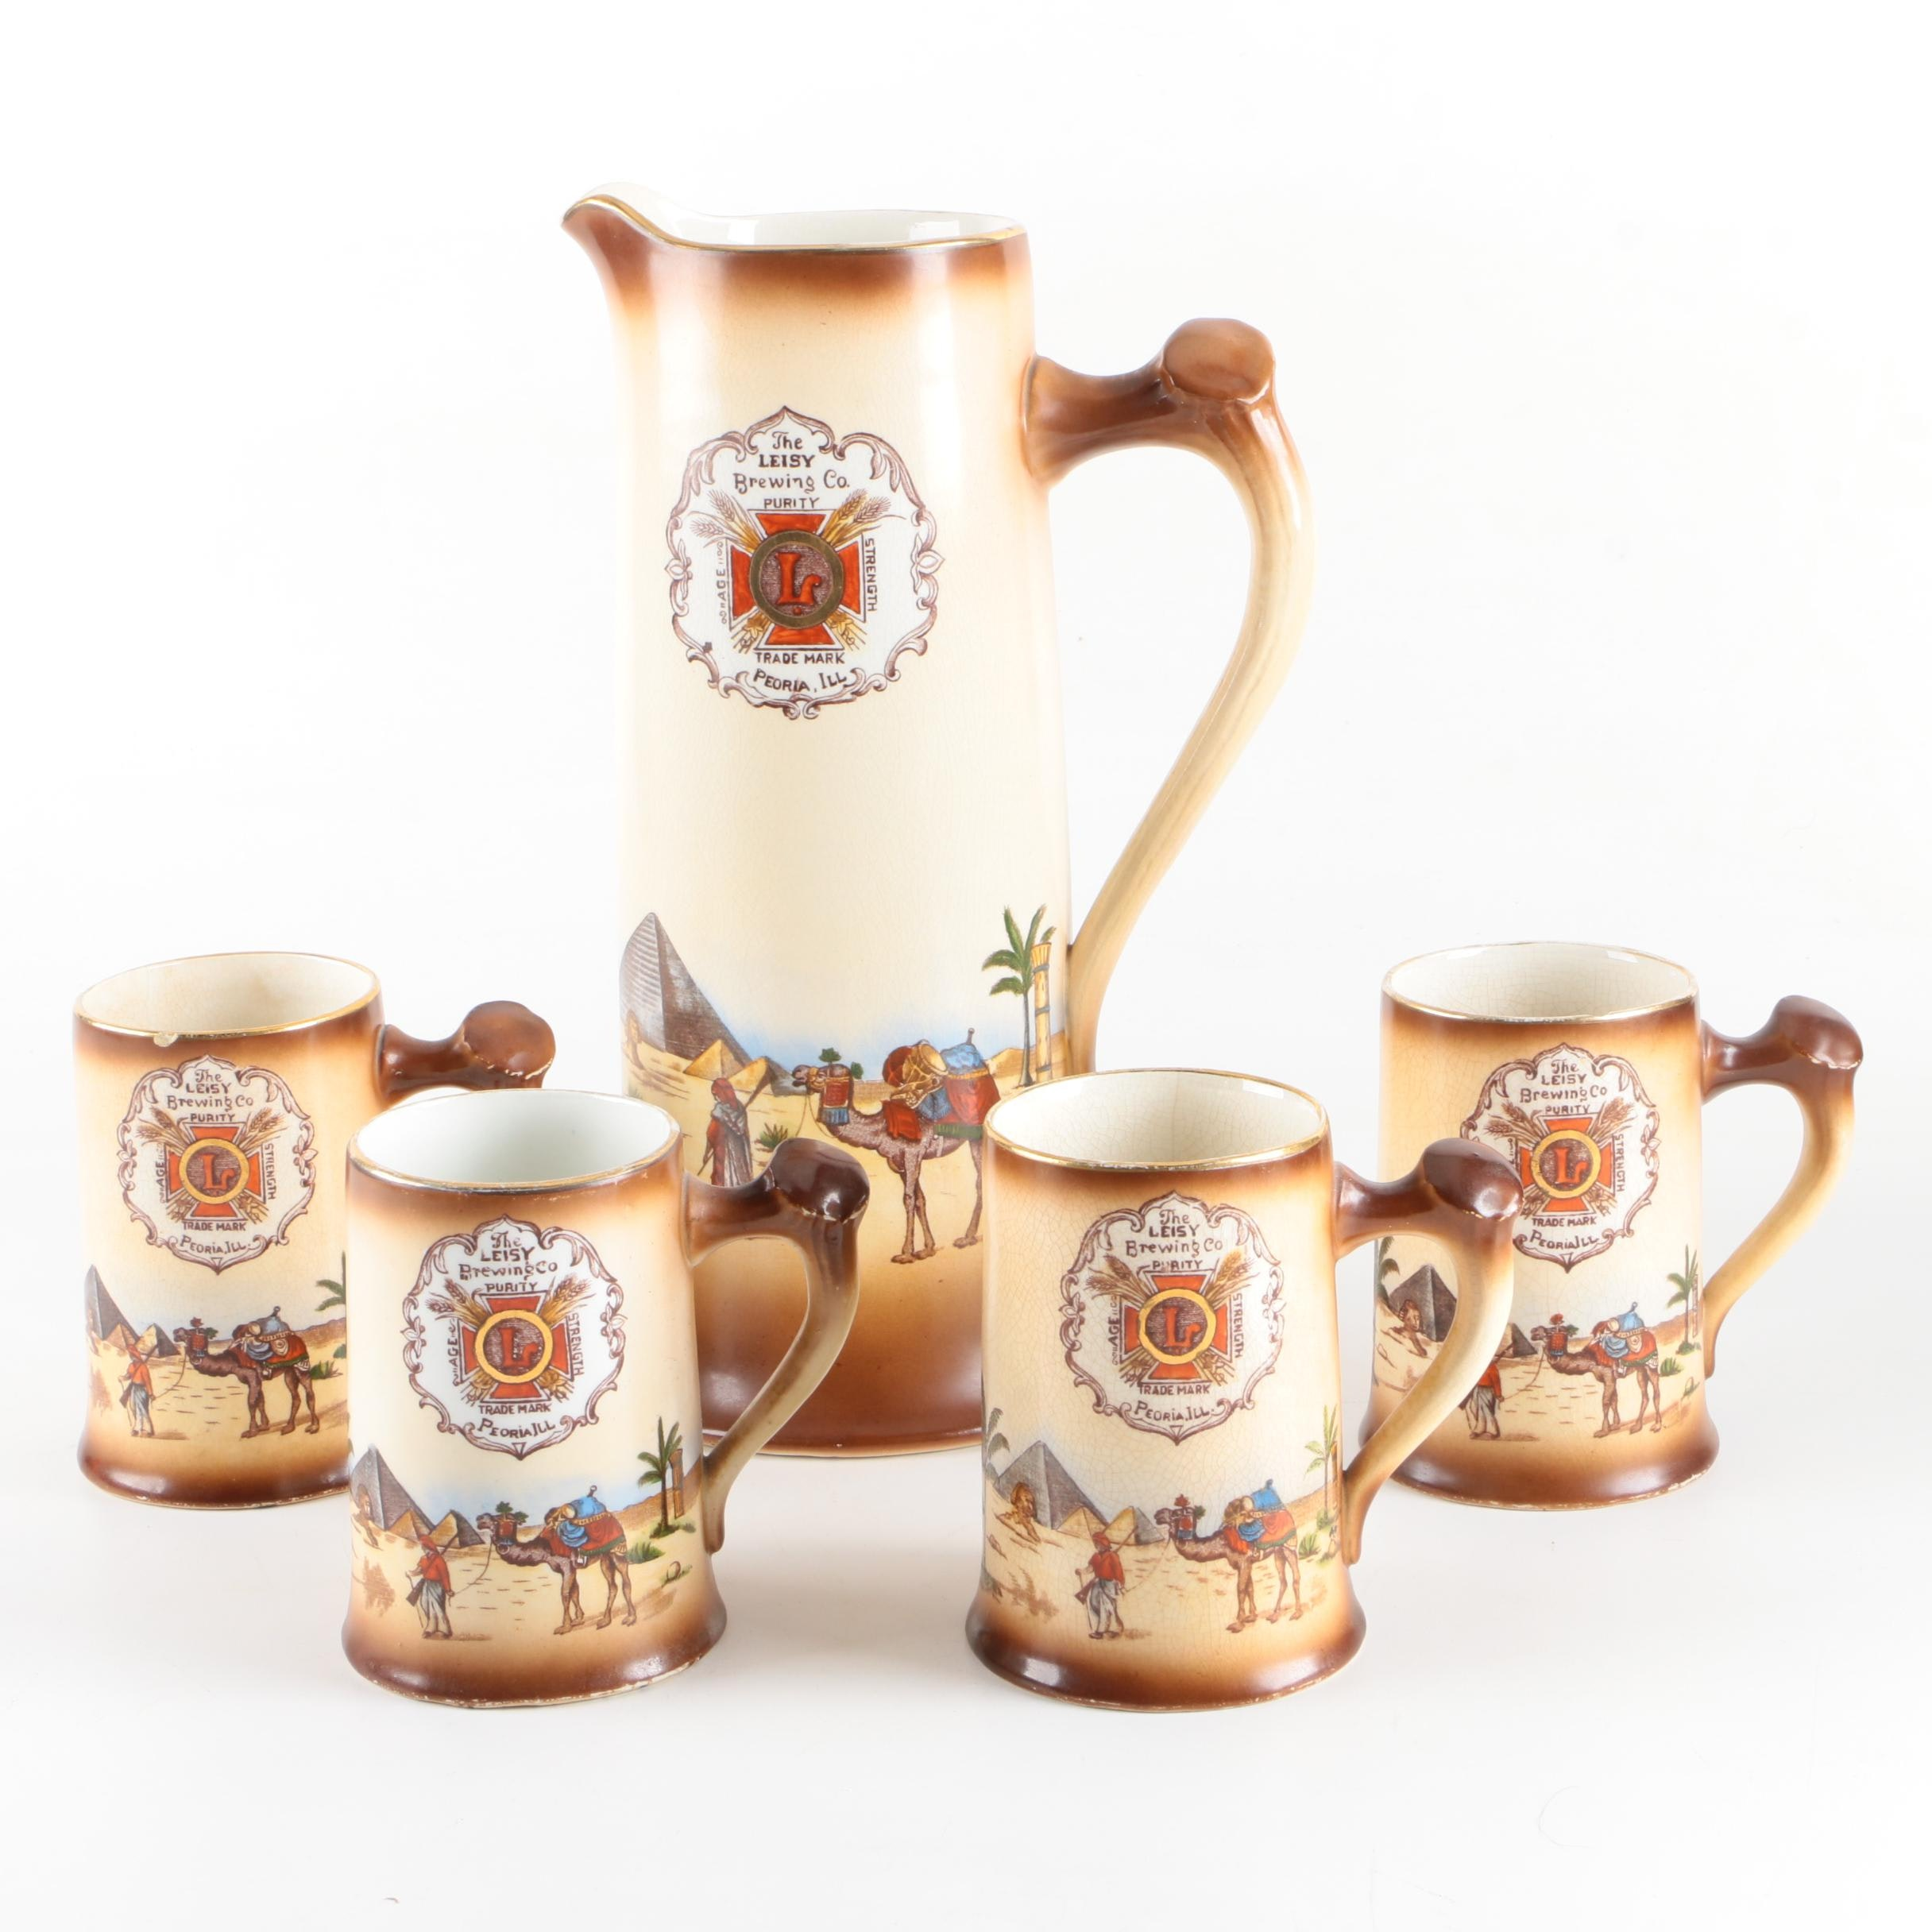 Antique Leisy Brewing Co. Pitcher and Steins